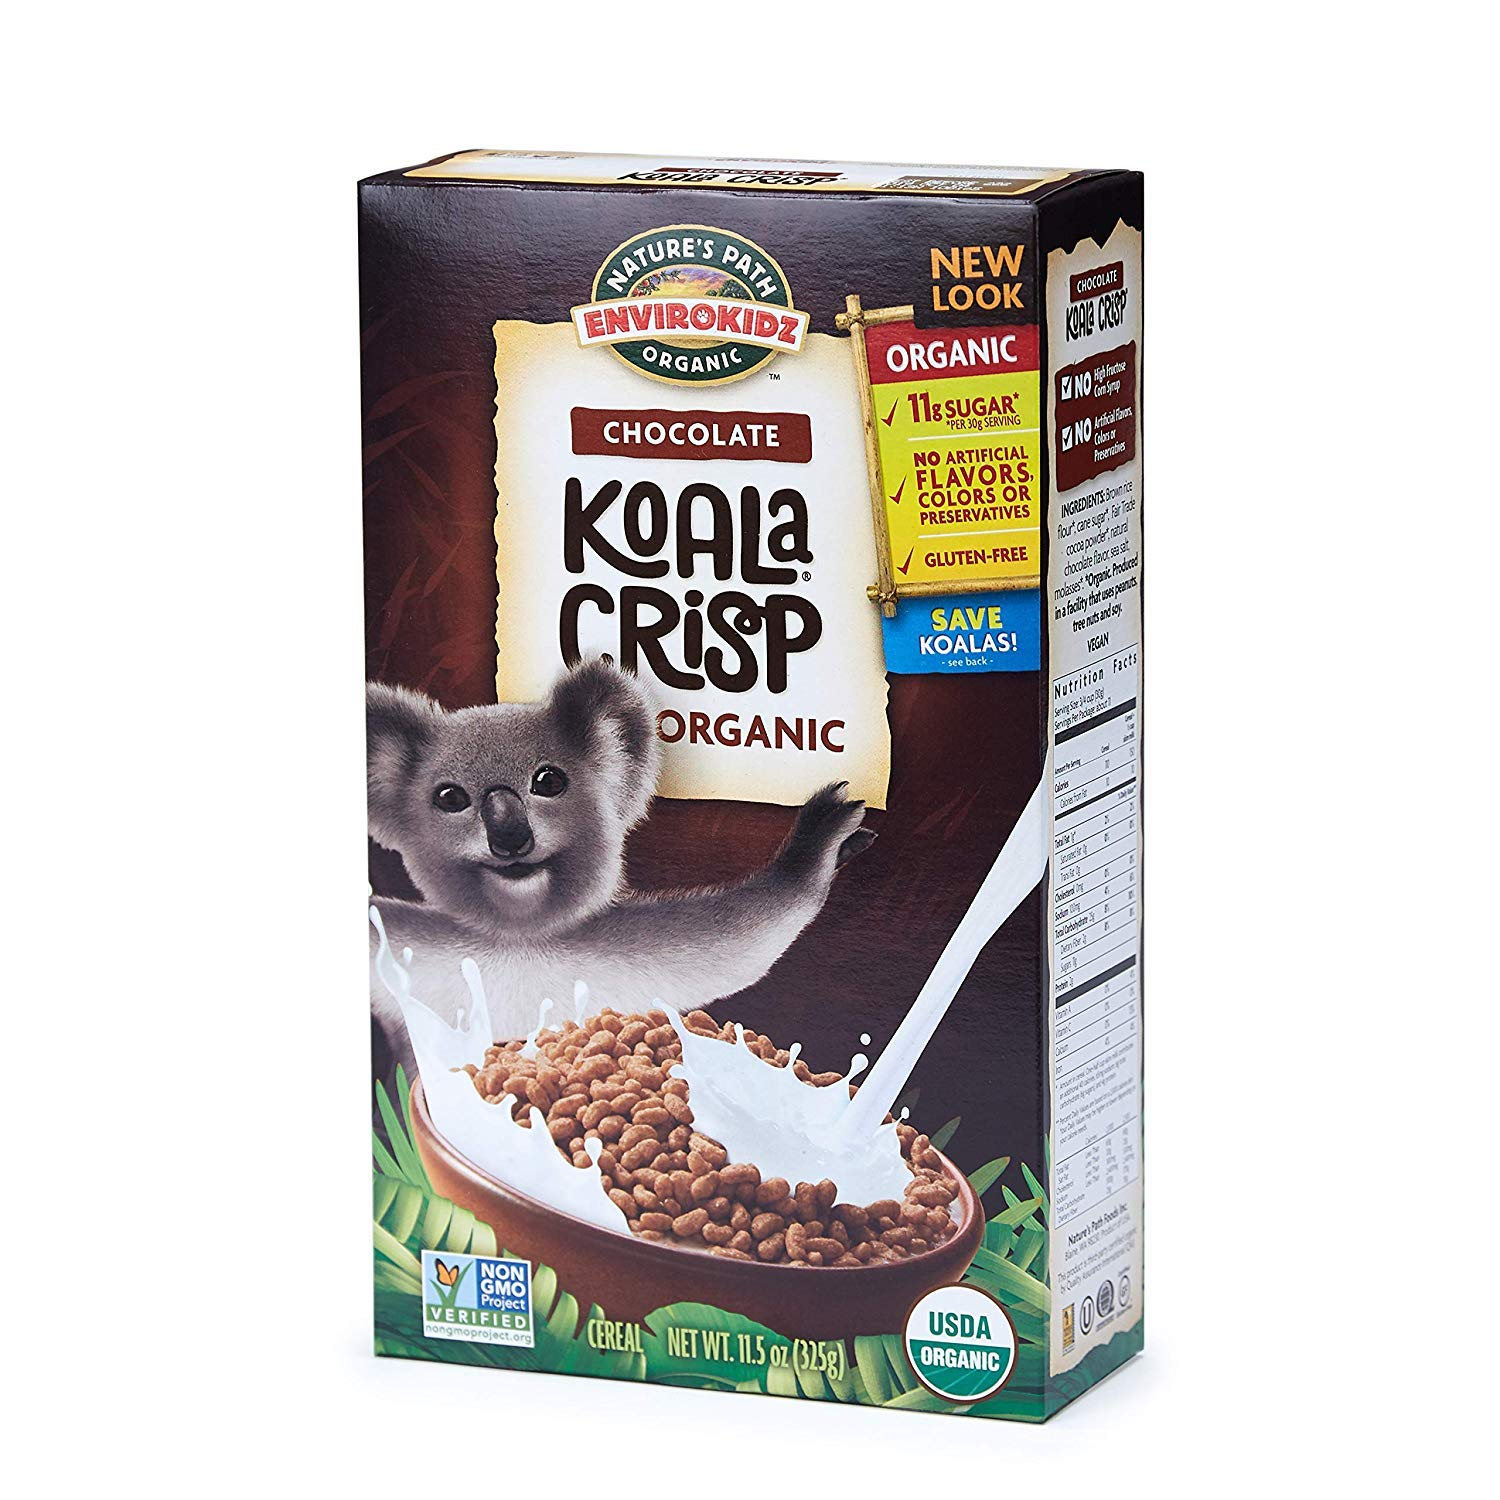 Nature's Path EnviroKidz Koala Crisp Chocolate Cereal, Healthy, Organic, Gluten-Free, 11.5 Ounce Box